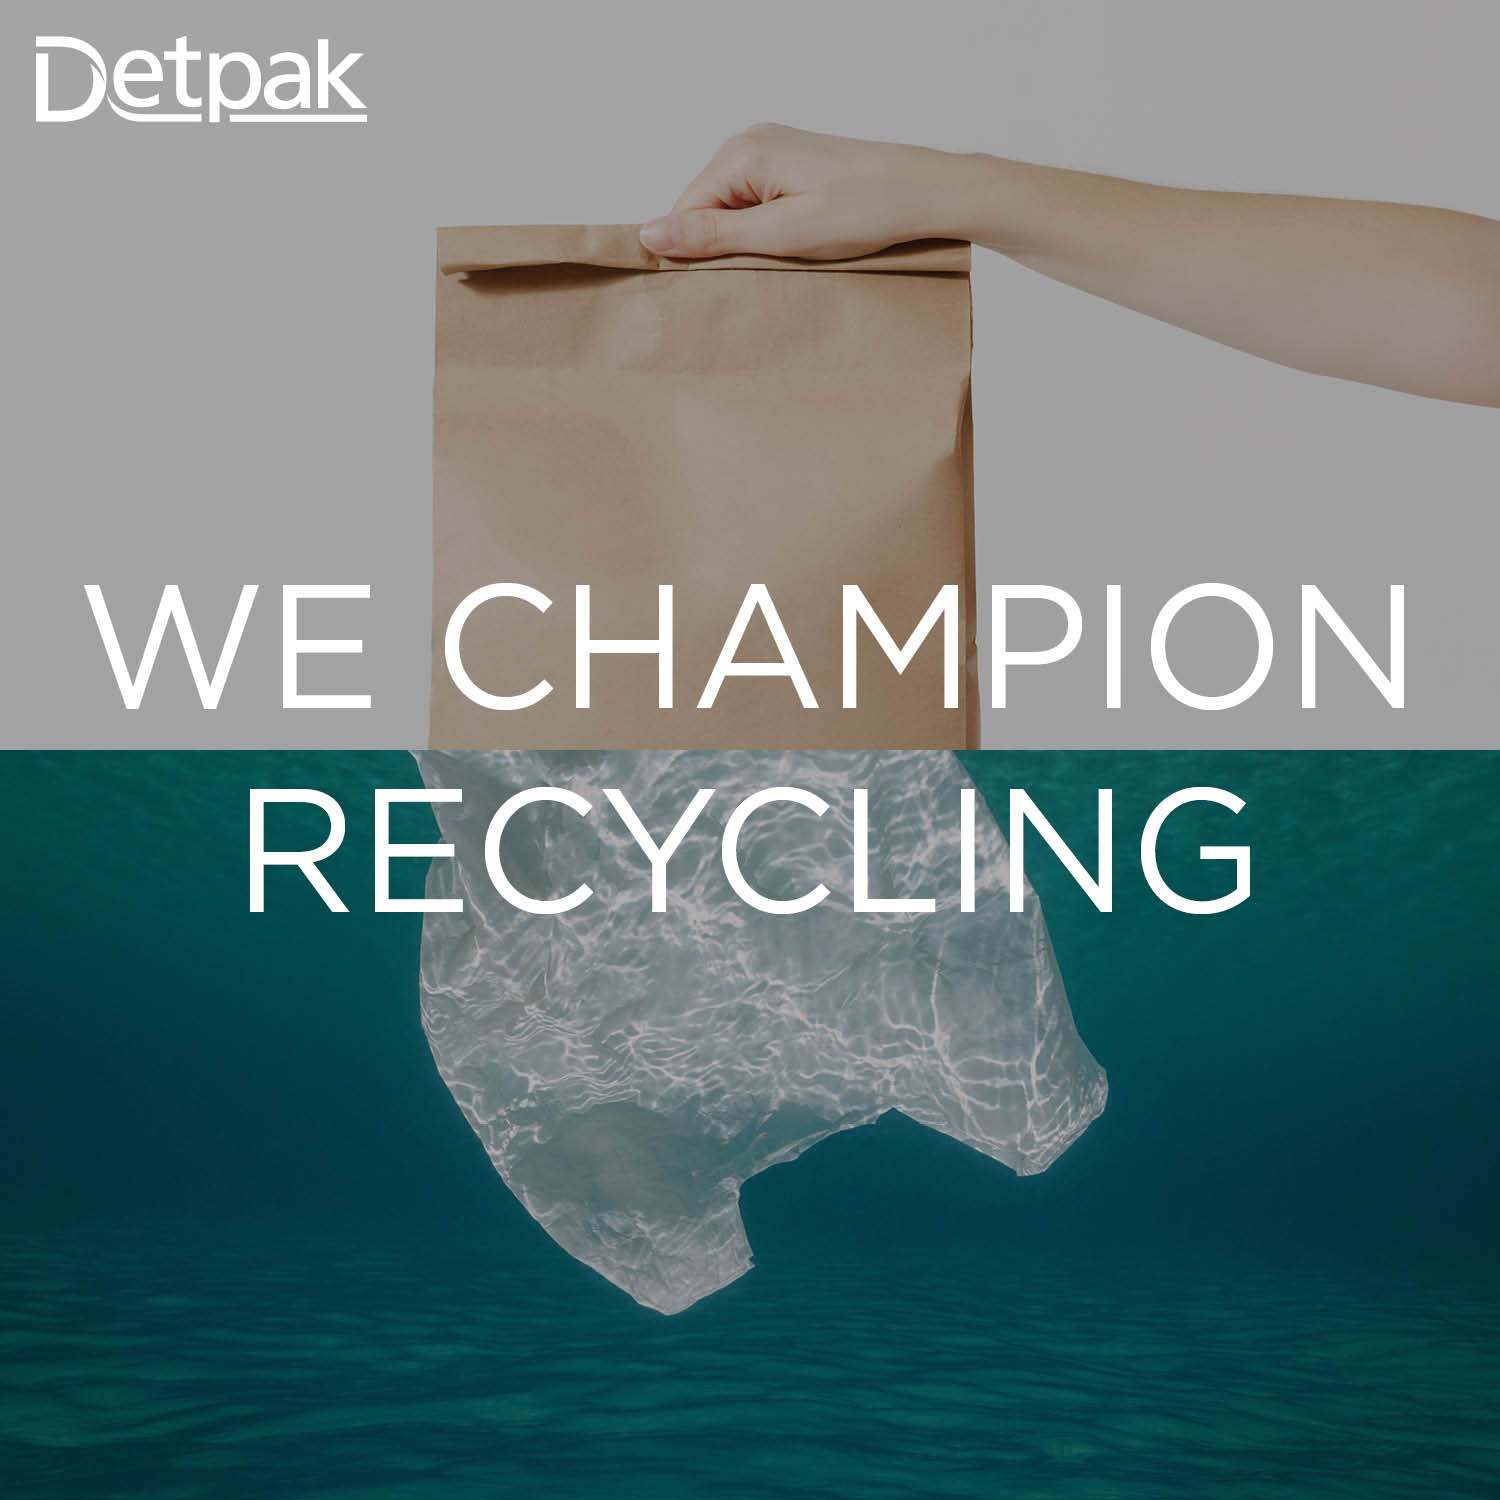 Image of paper bag and plastic bag with text 'We Champion recycling'